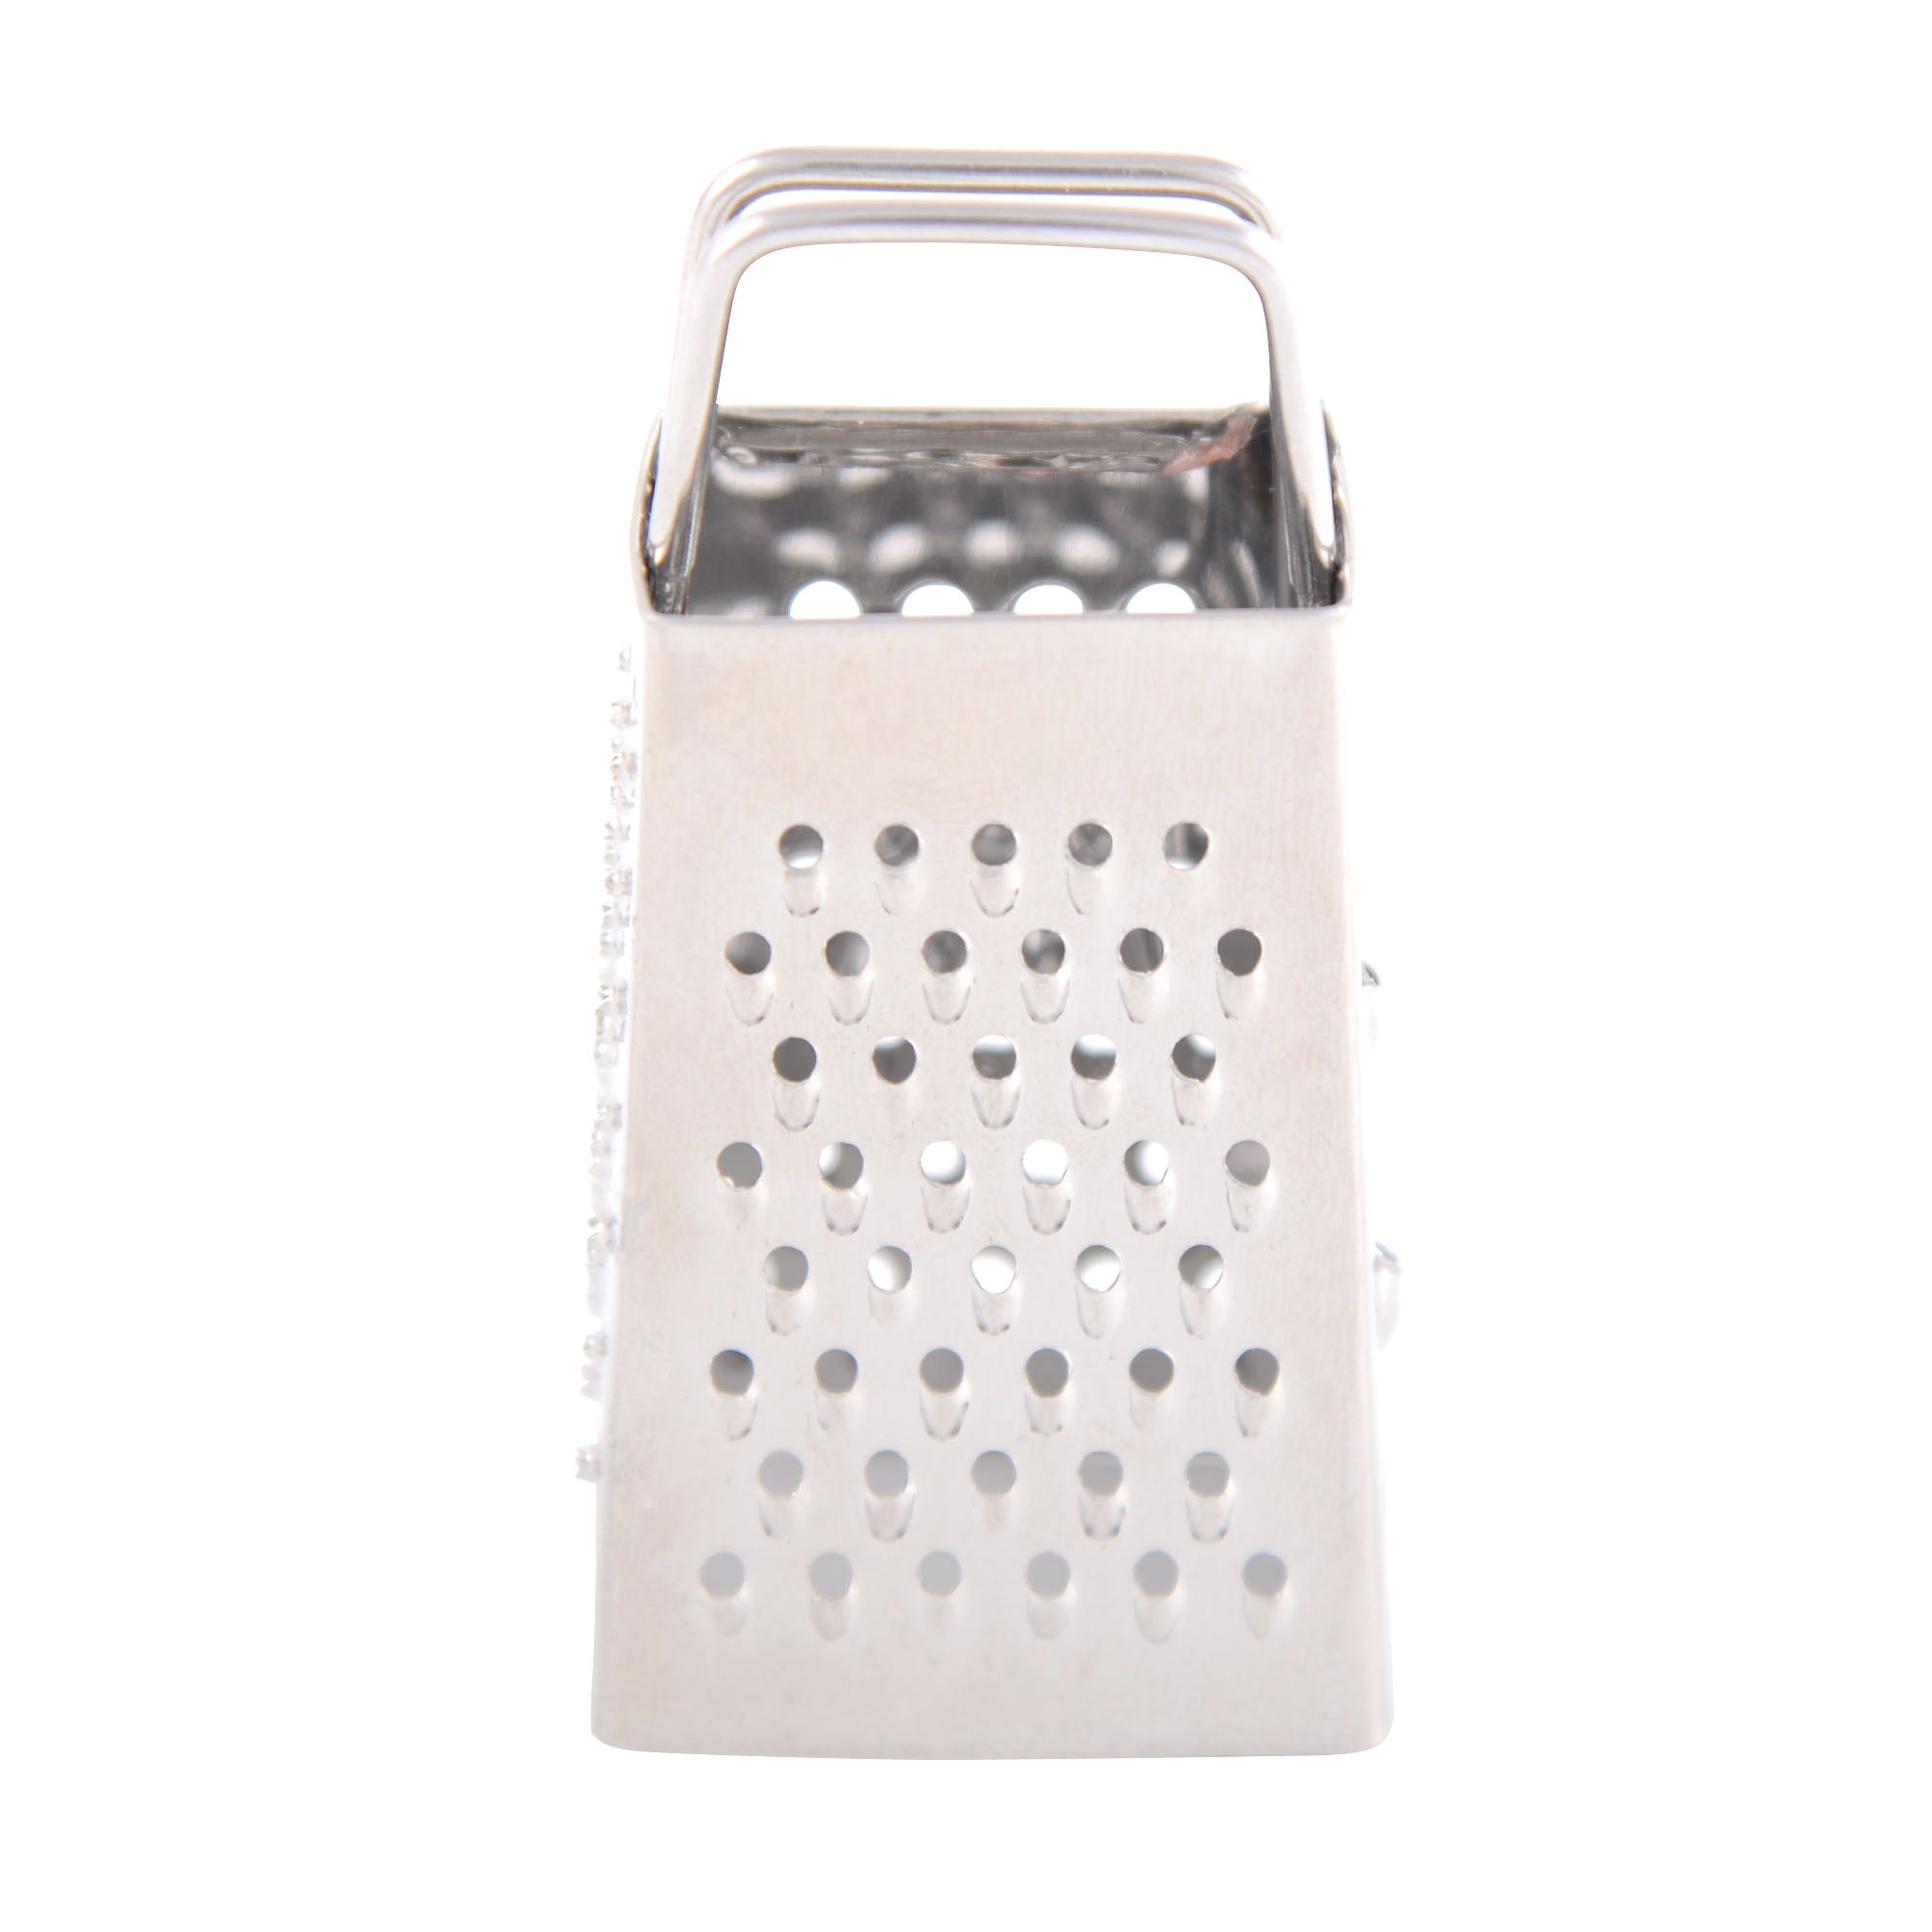 Stainless Steel Mini Grater